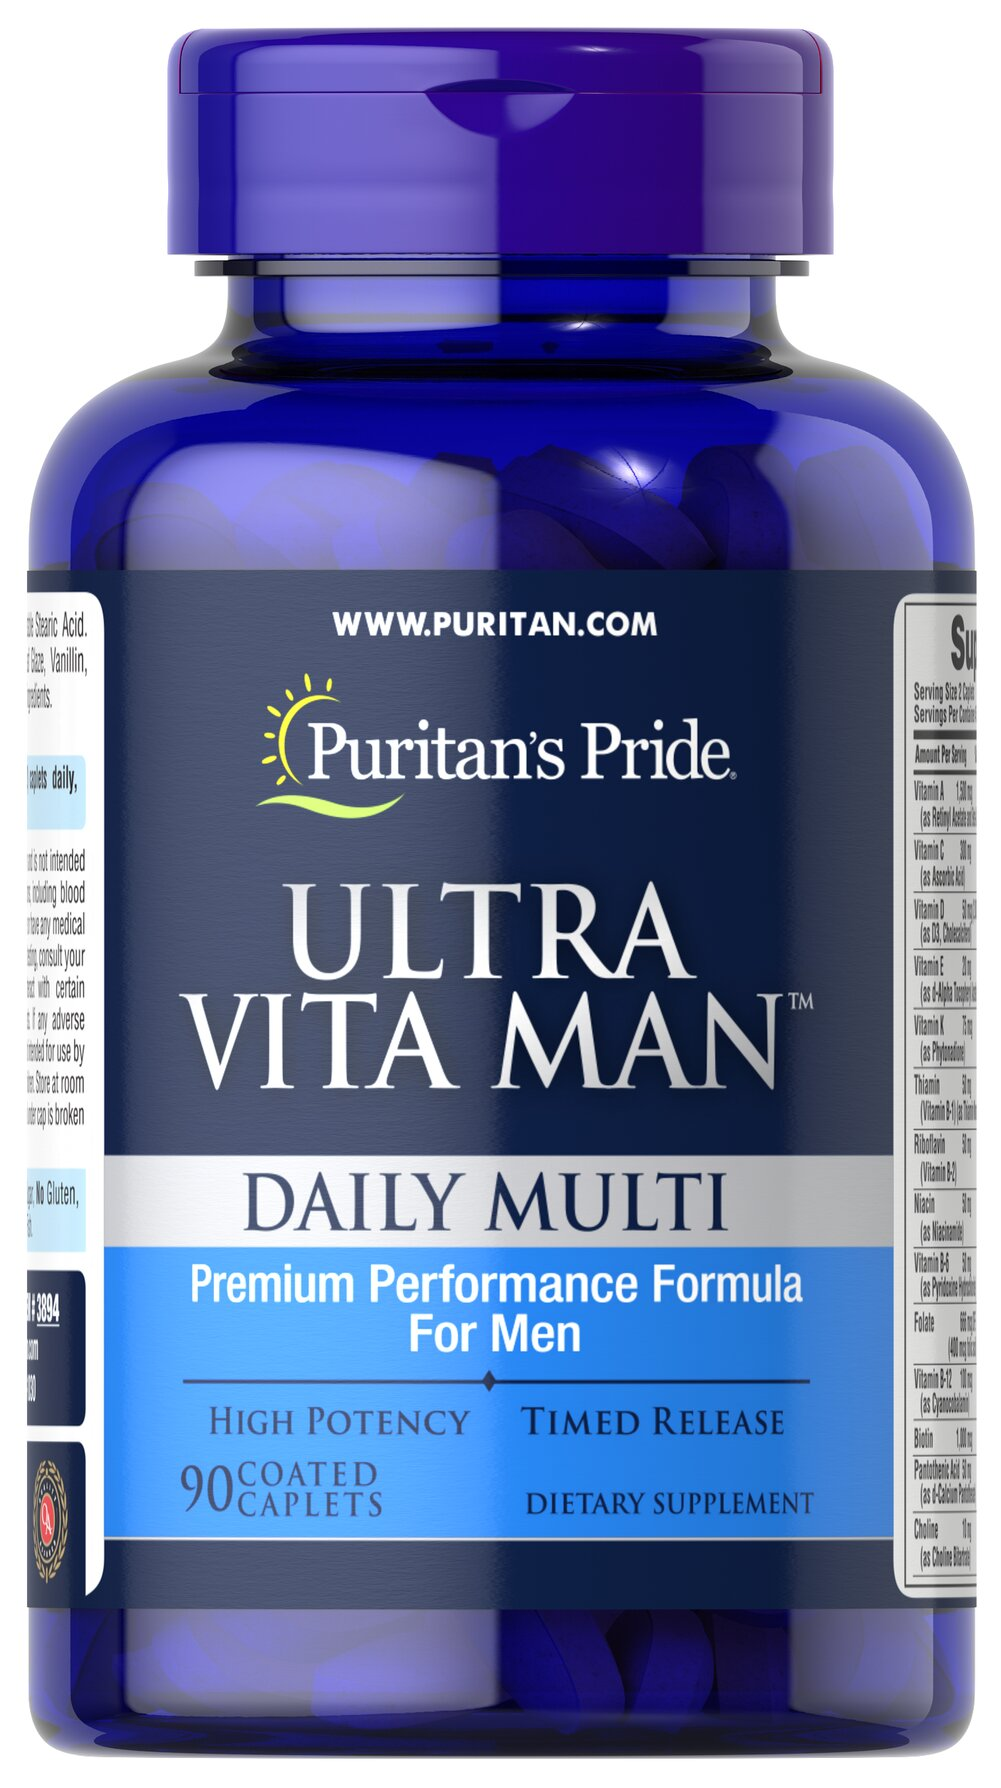 Ultra Vita Man™ Time Release <p>This time release multivitamins  delivers vitamins and minerals shown to be beneficial to men's overall wellness. From antioxidant and immune support to cardiovascular health, Ultra Vita Man is ideal for today's on-the-go men!**</p> 90 Caplets  $18.06